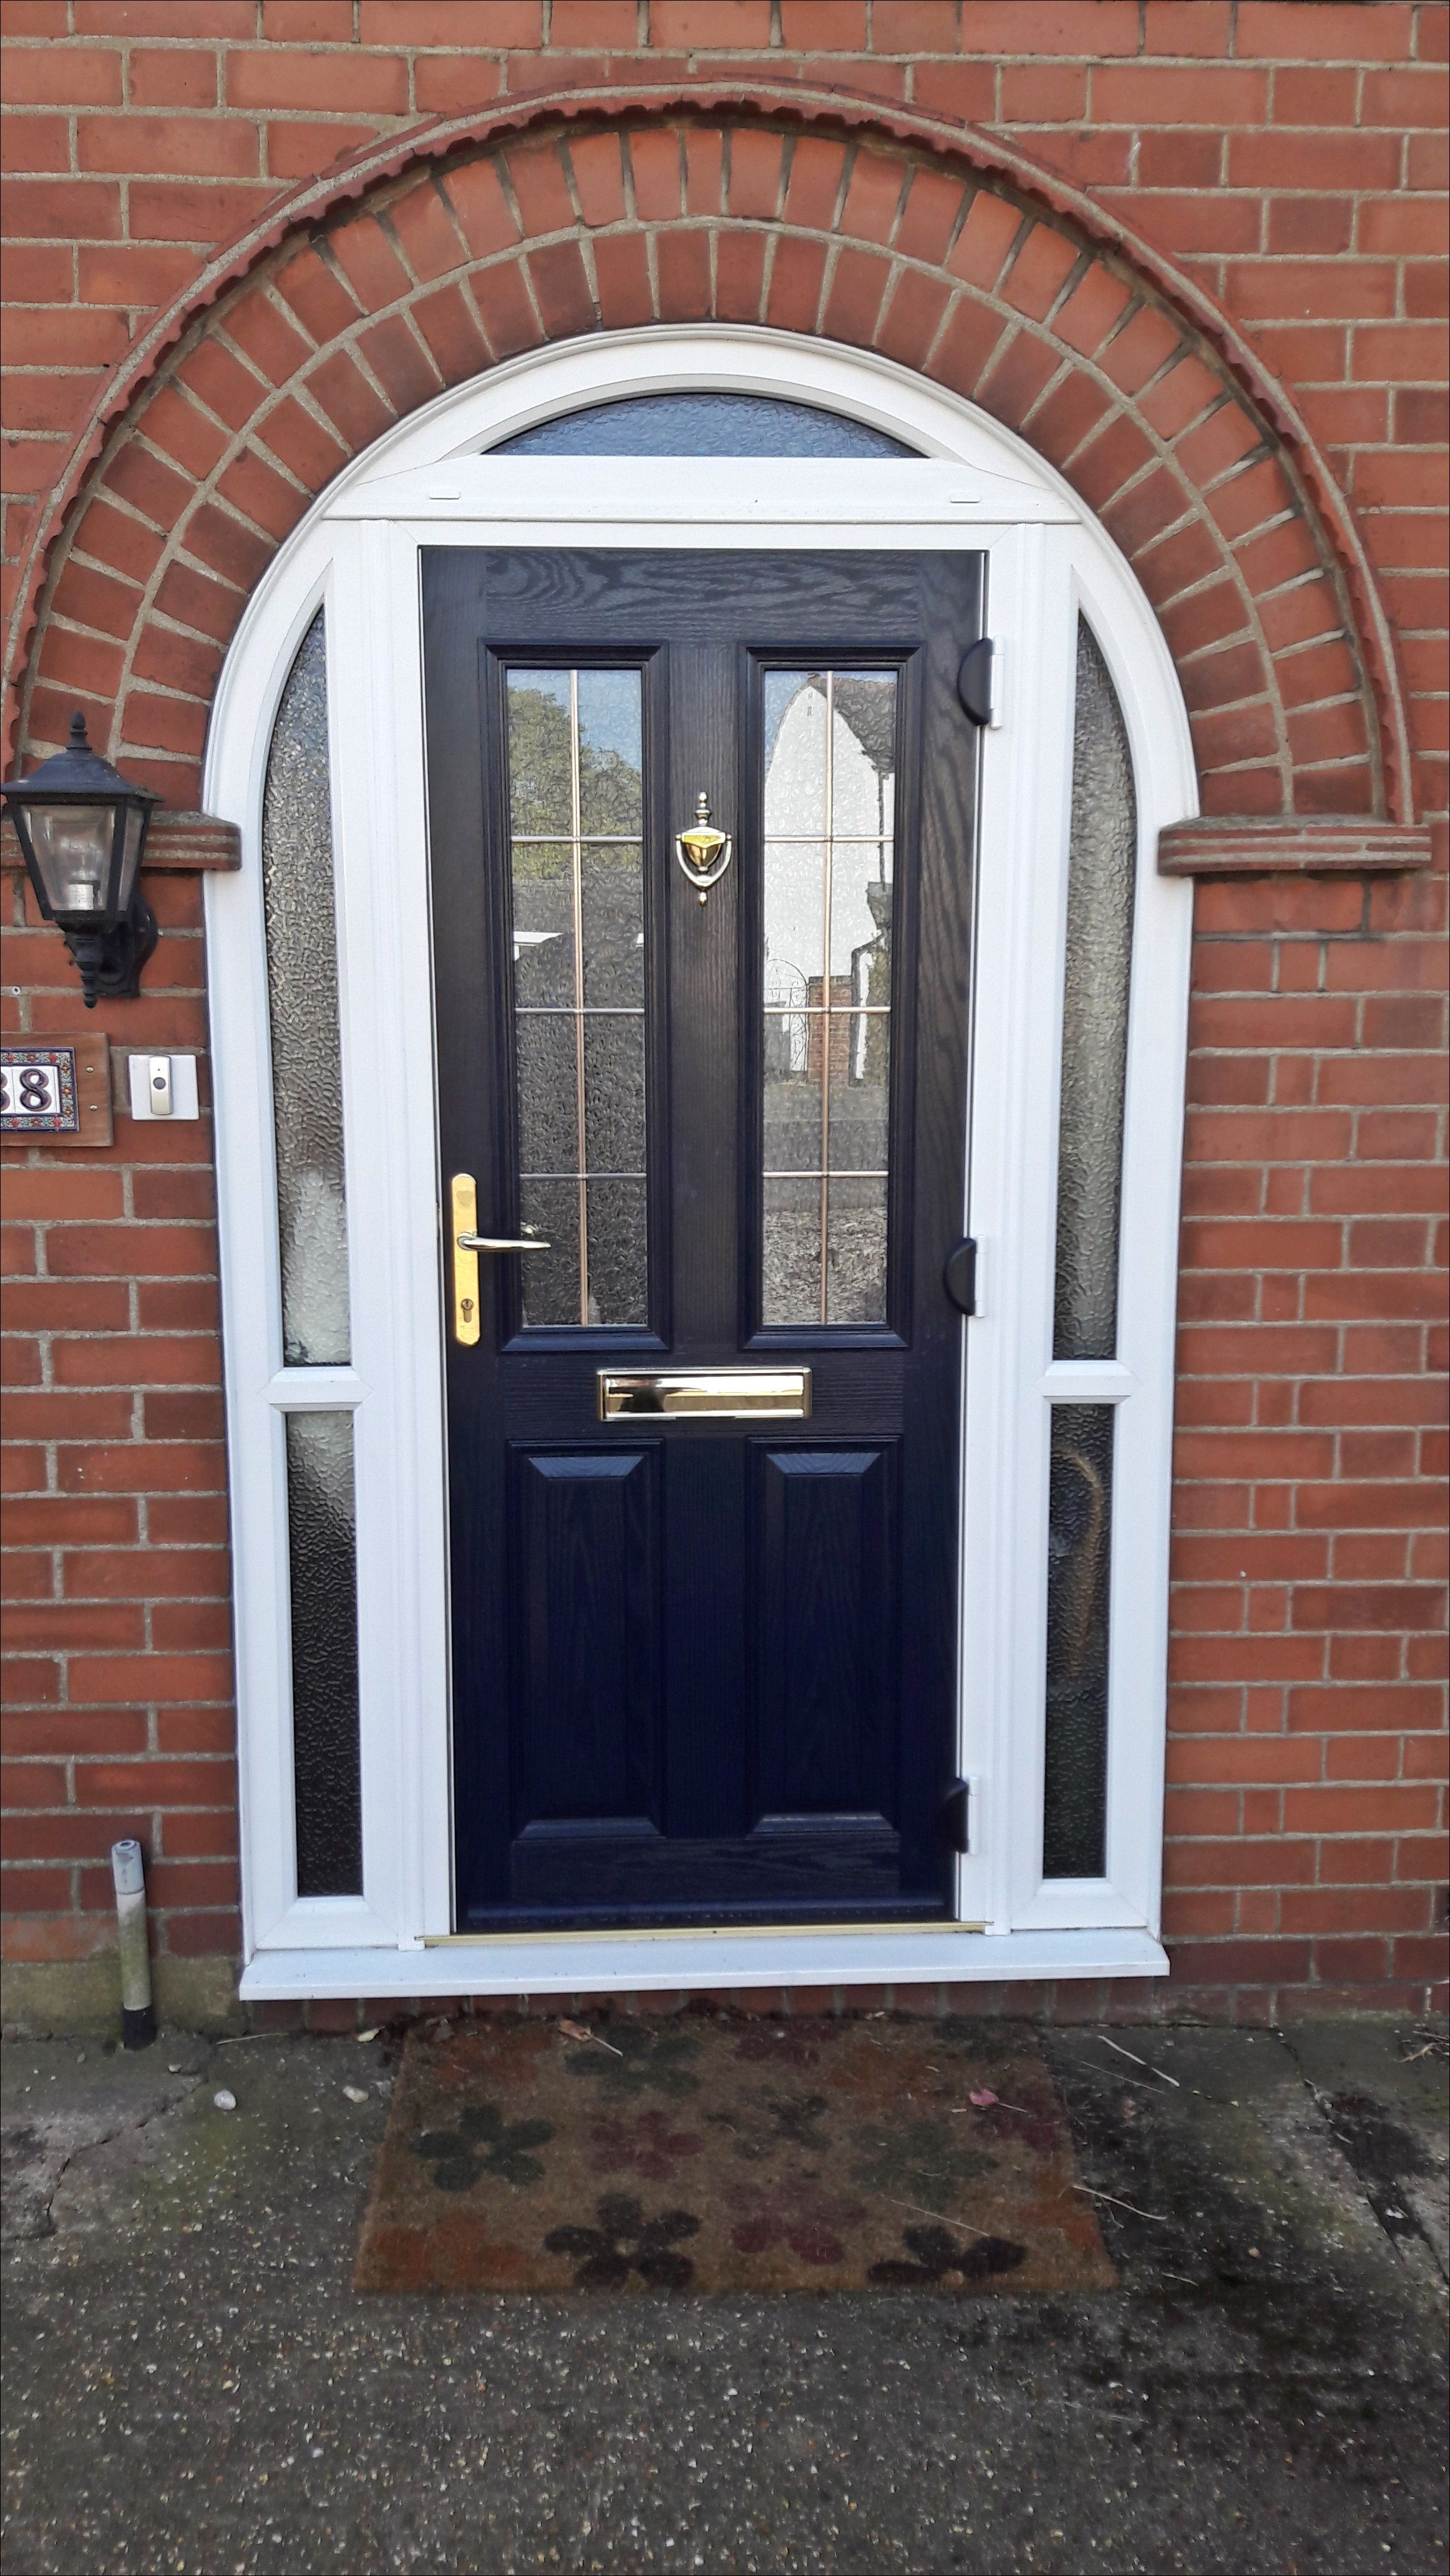 Blue Composite Front Entrance Door With White Arched Head Upvc Frame Supplied And Installed By Unicorn